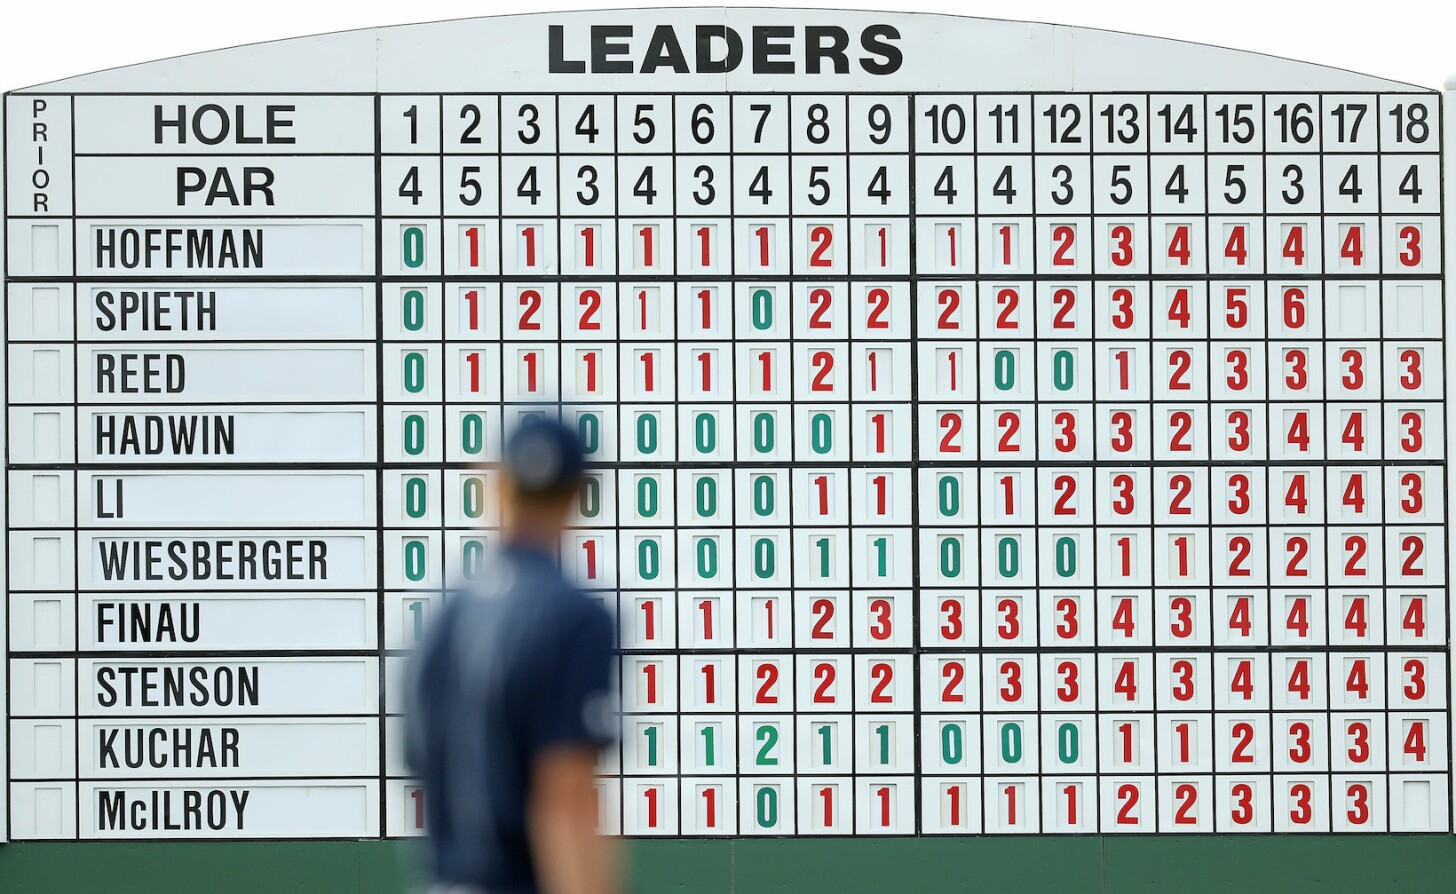 2018 Masters Tournament: Round 1 - Leaderboard on No. 17